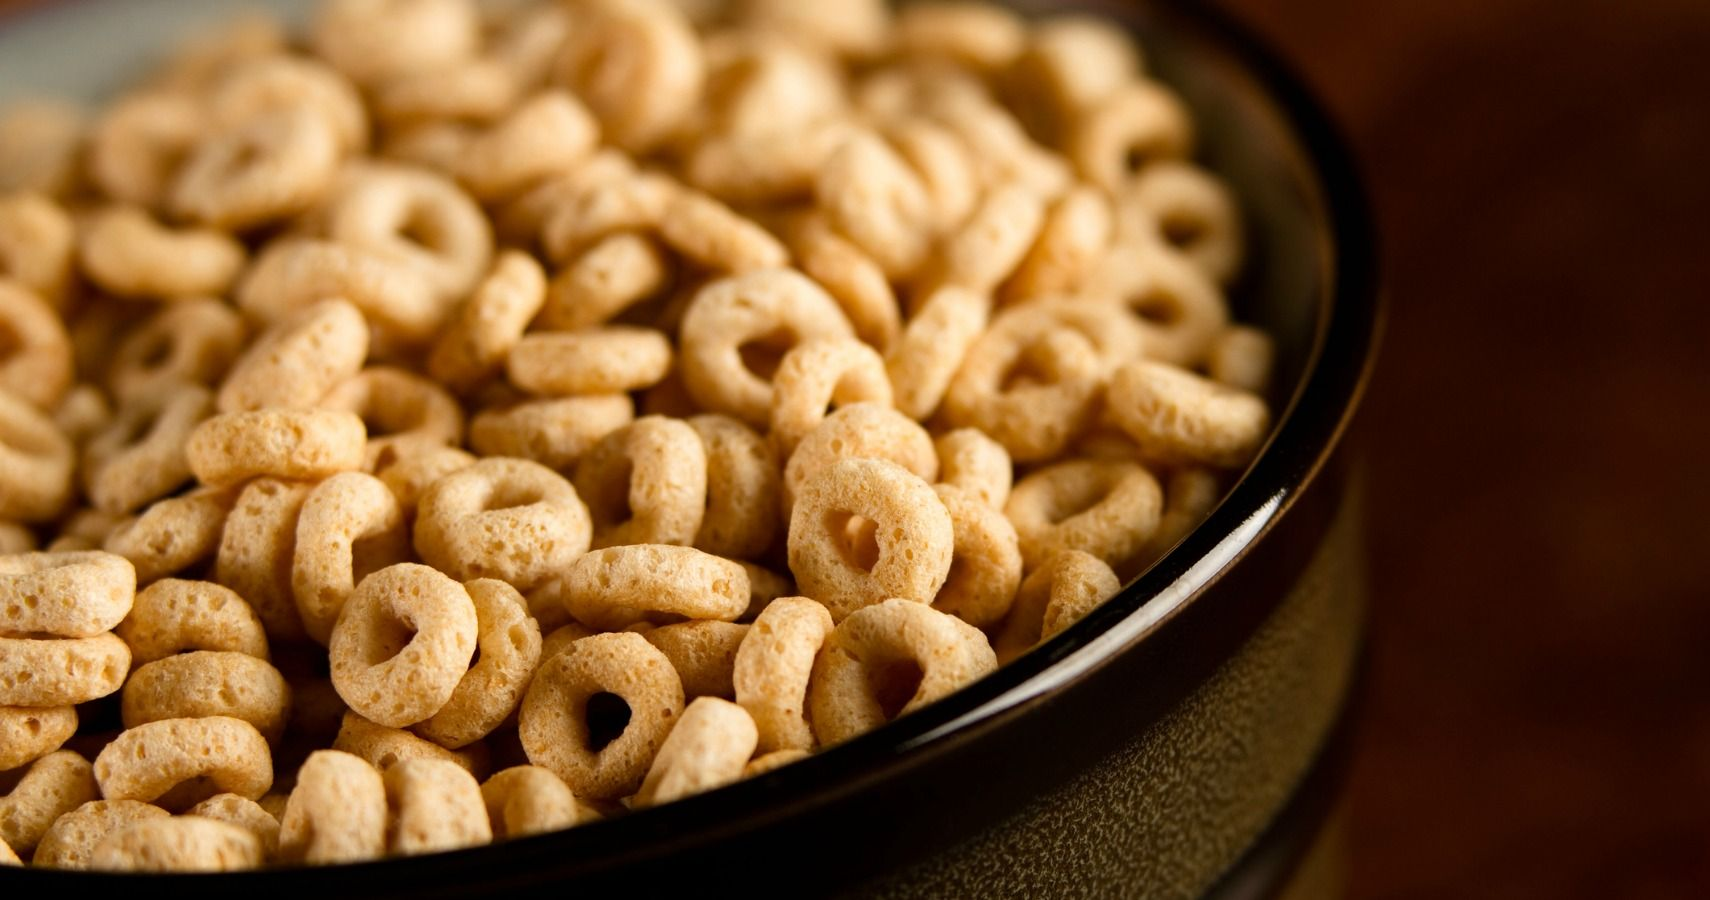 New Study Suggests Weed Killer Is Hiding In Your Kid's Cheerios